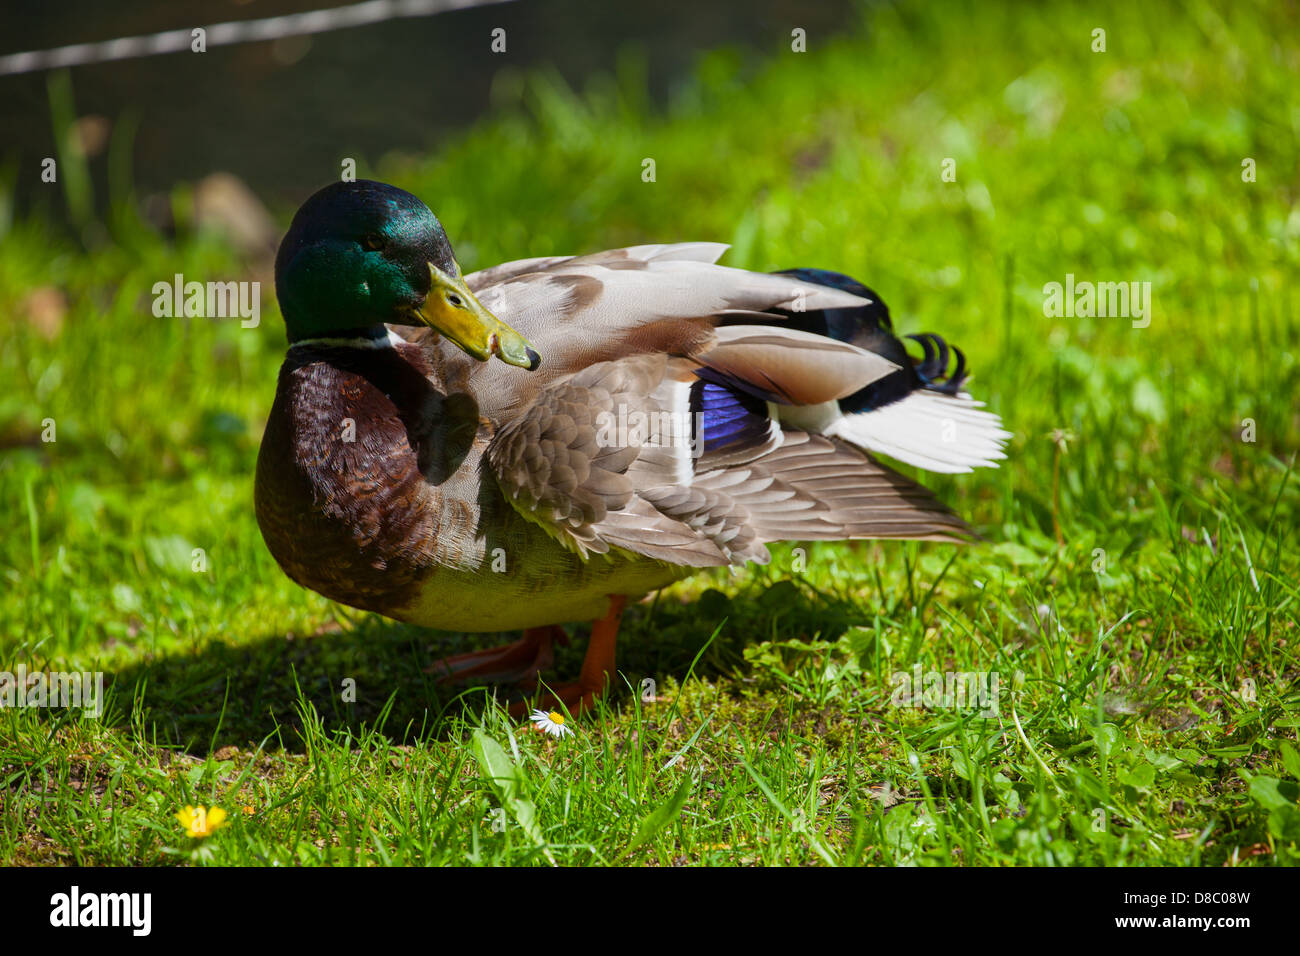 Portrait of duck with injured nose, green nature background. - Stock Image